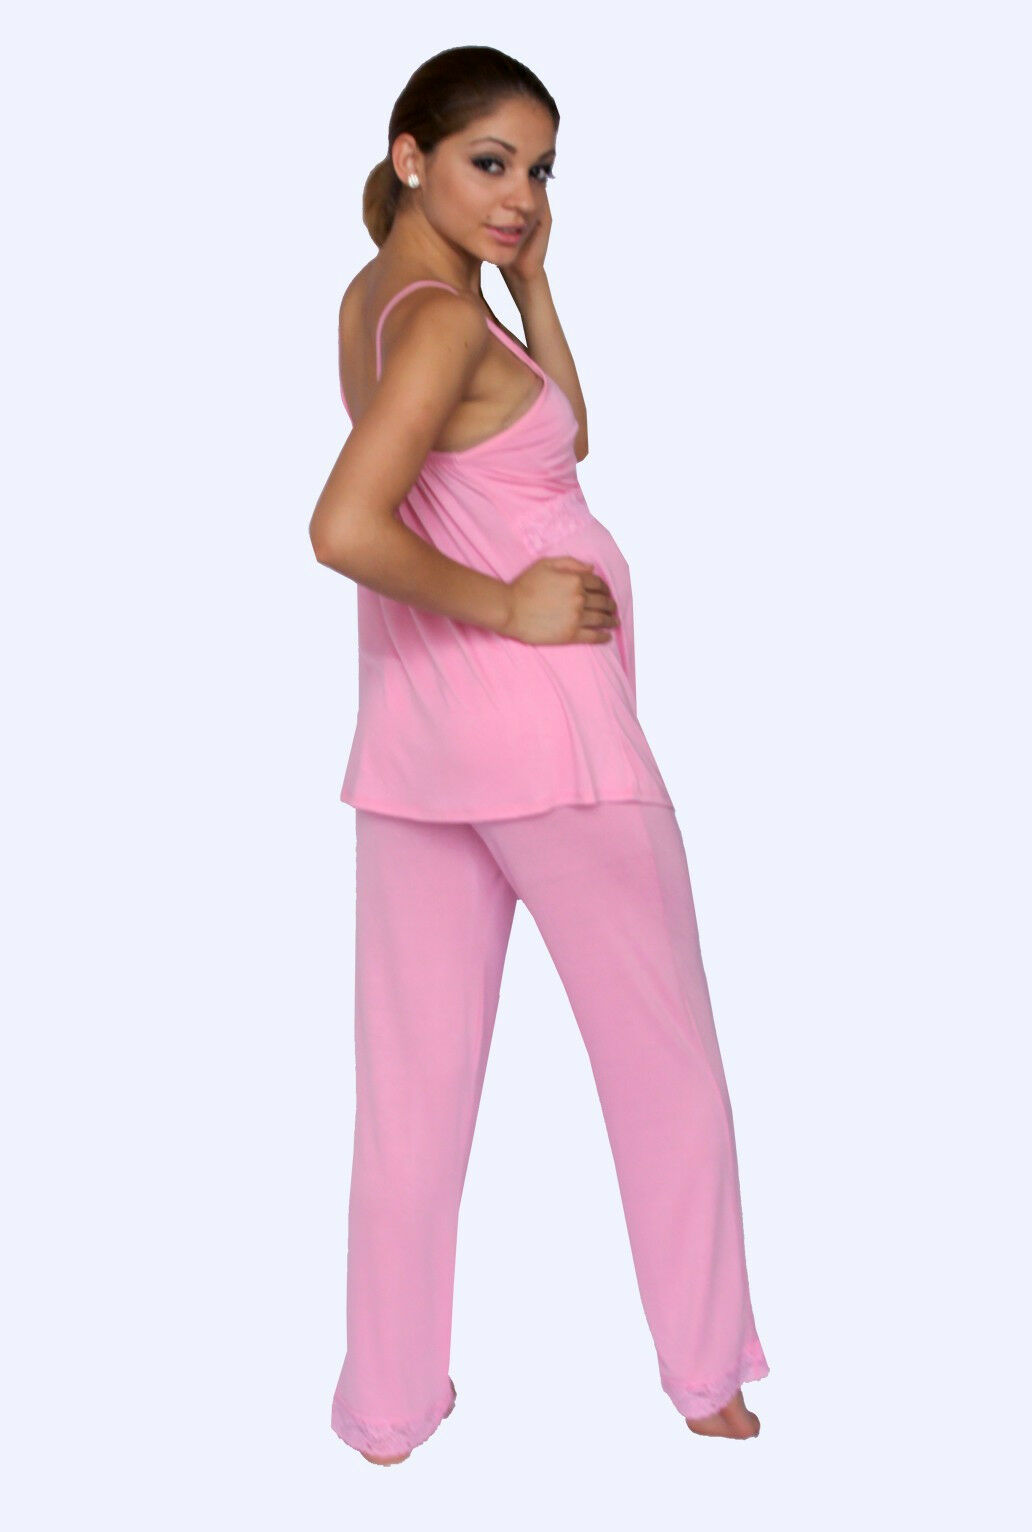 NEW MATERNITY NURSING Bra Pink Pajama Night Gown Breastfeeding Set ...